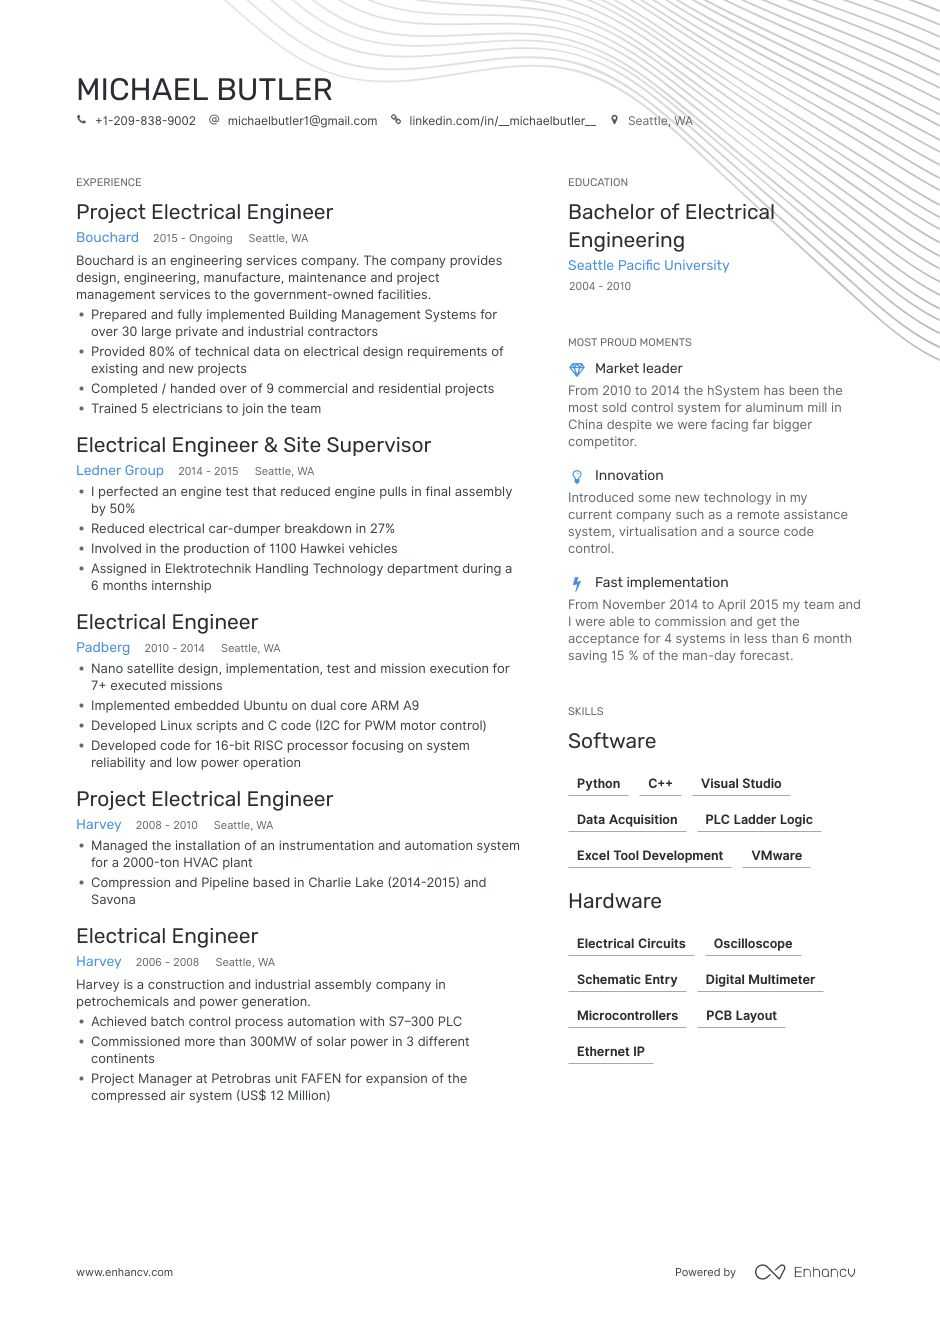 electrical engineer resume examples pro tips featured enhancv entry level sample Resume Entry Level Electrical Engineer Sample Resume